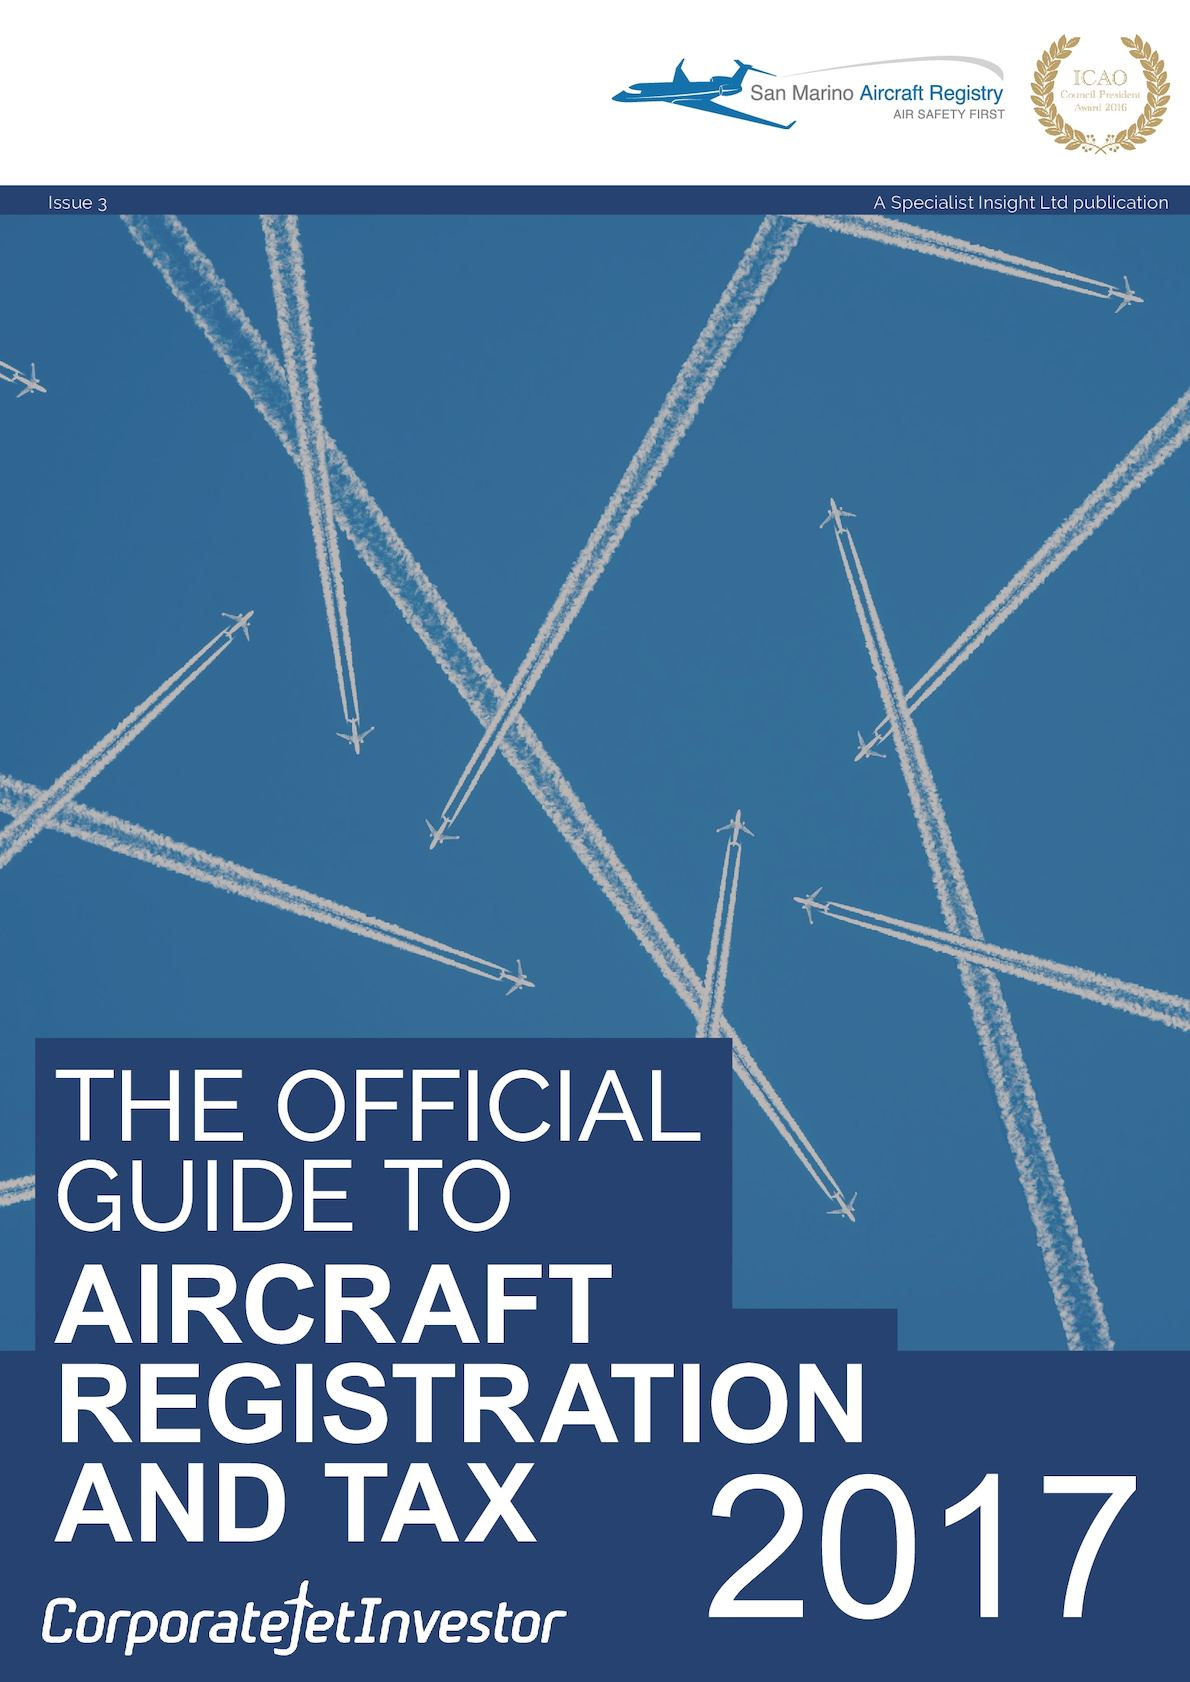 Calaméo The Ficial Guide To Aircraft Registration And Tax 2017